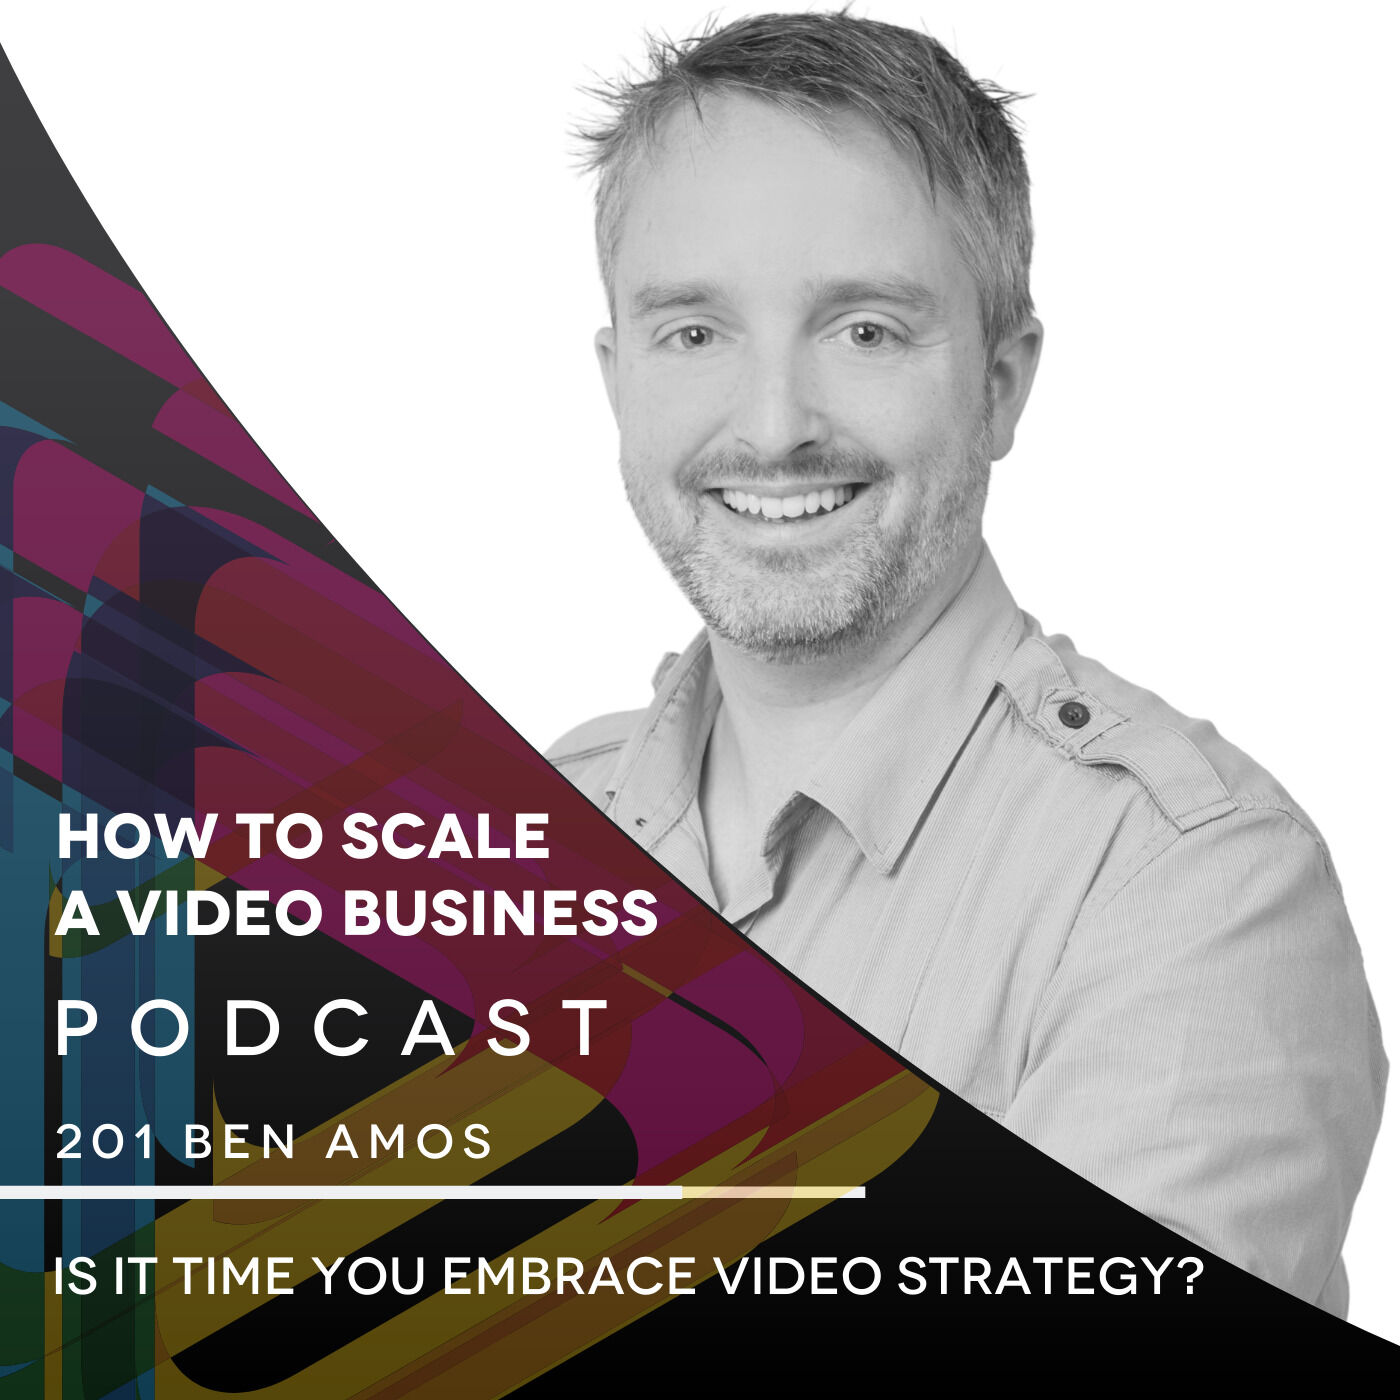 Is It Time You Embrace Video Strategy? EP #201 - Ben Amos